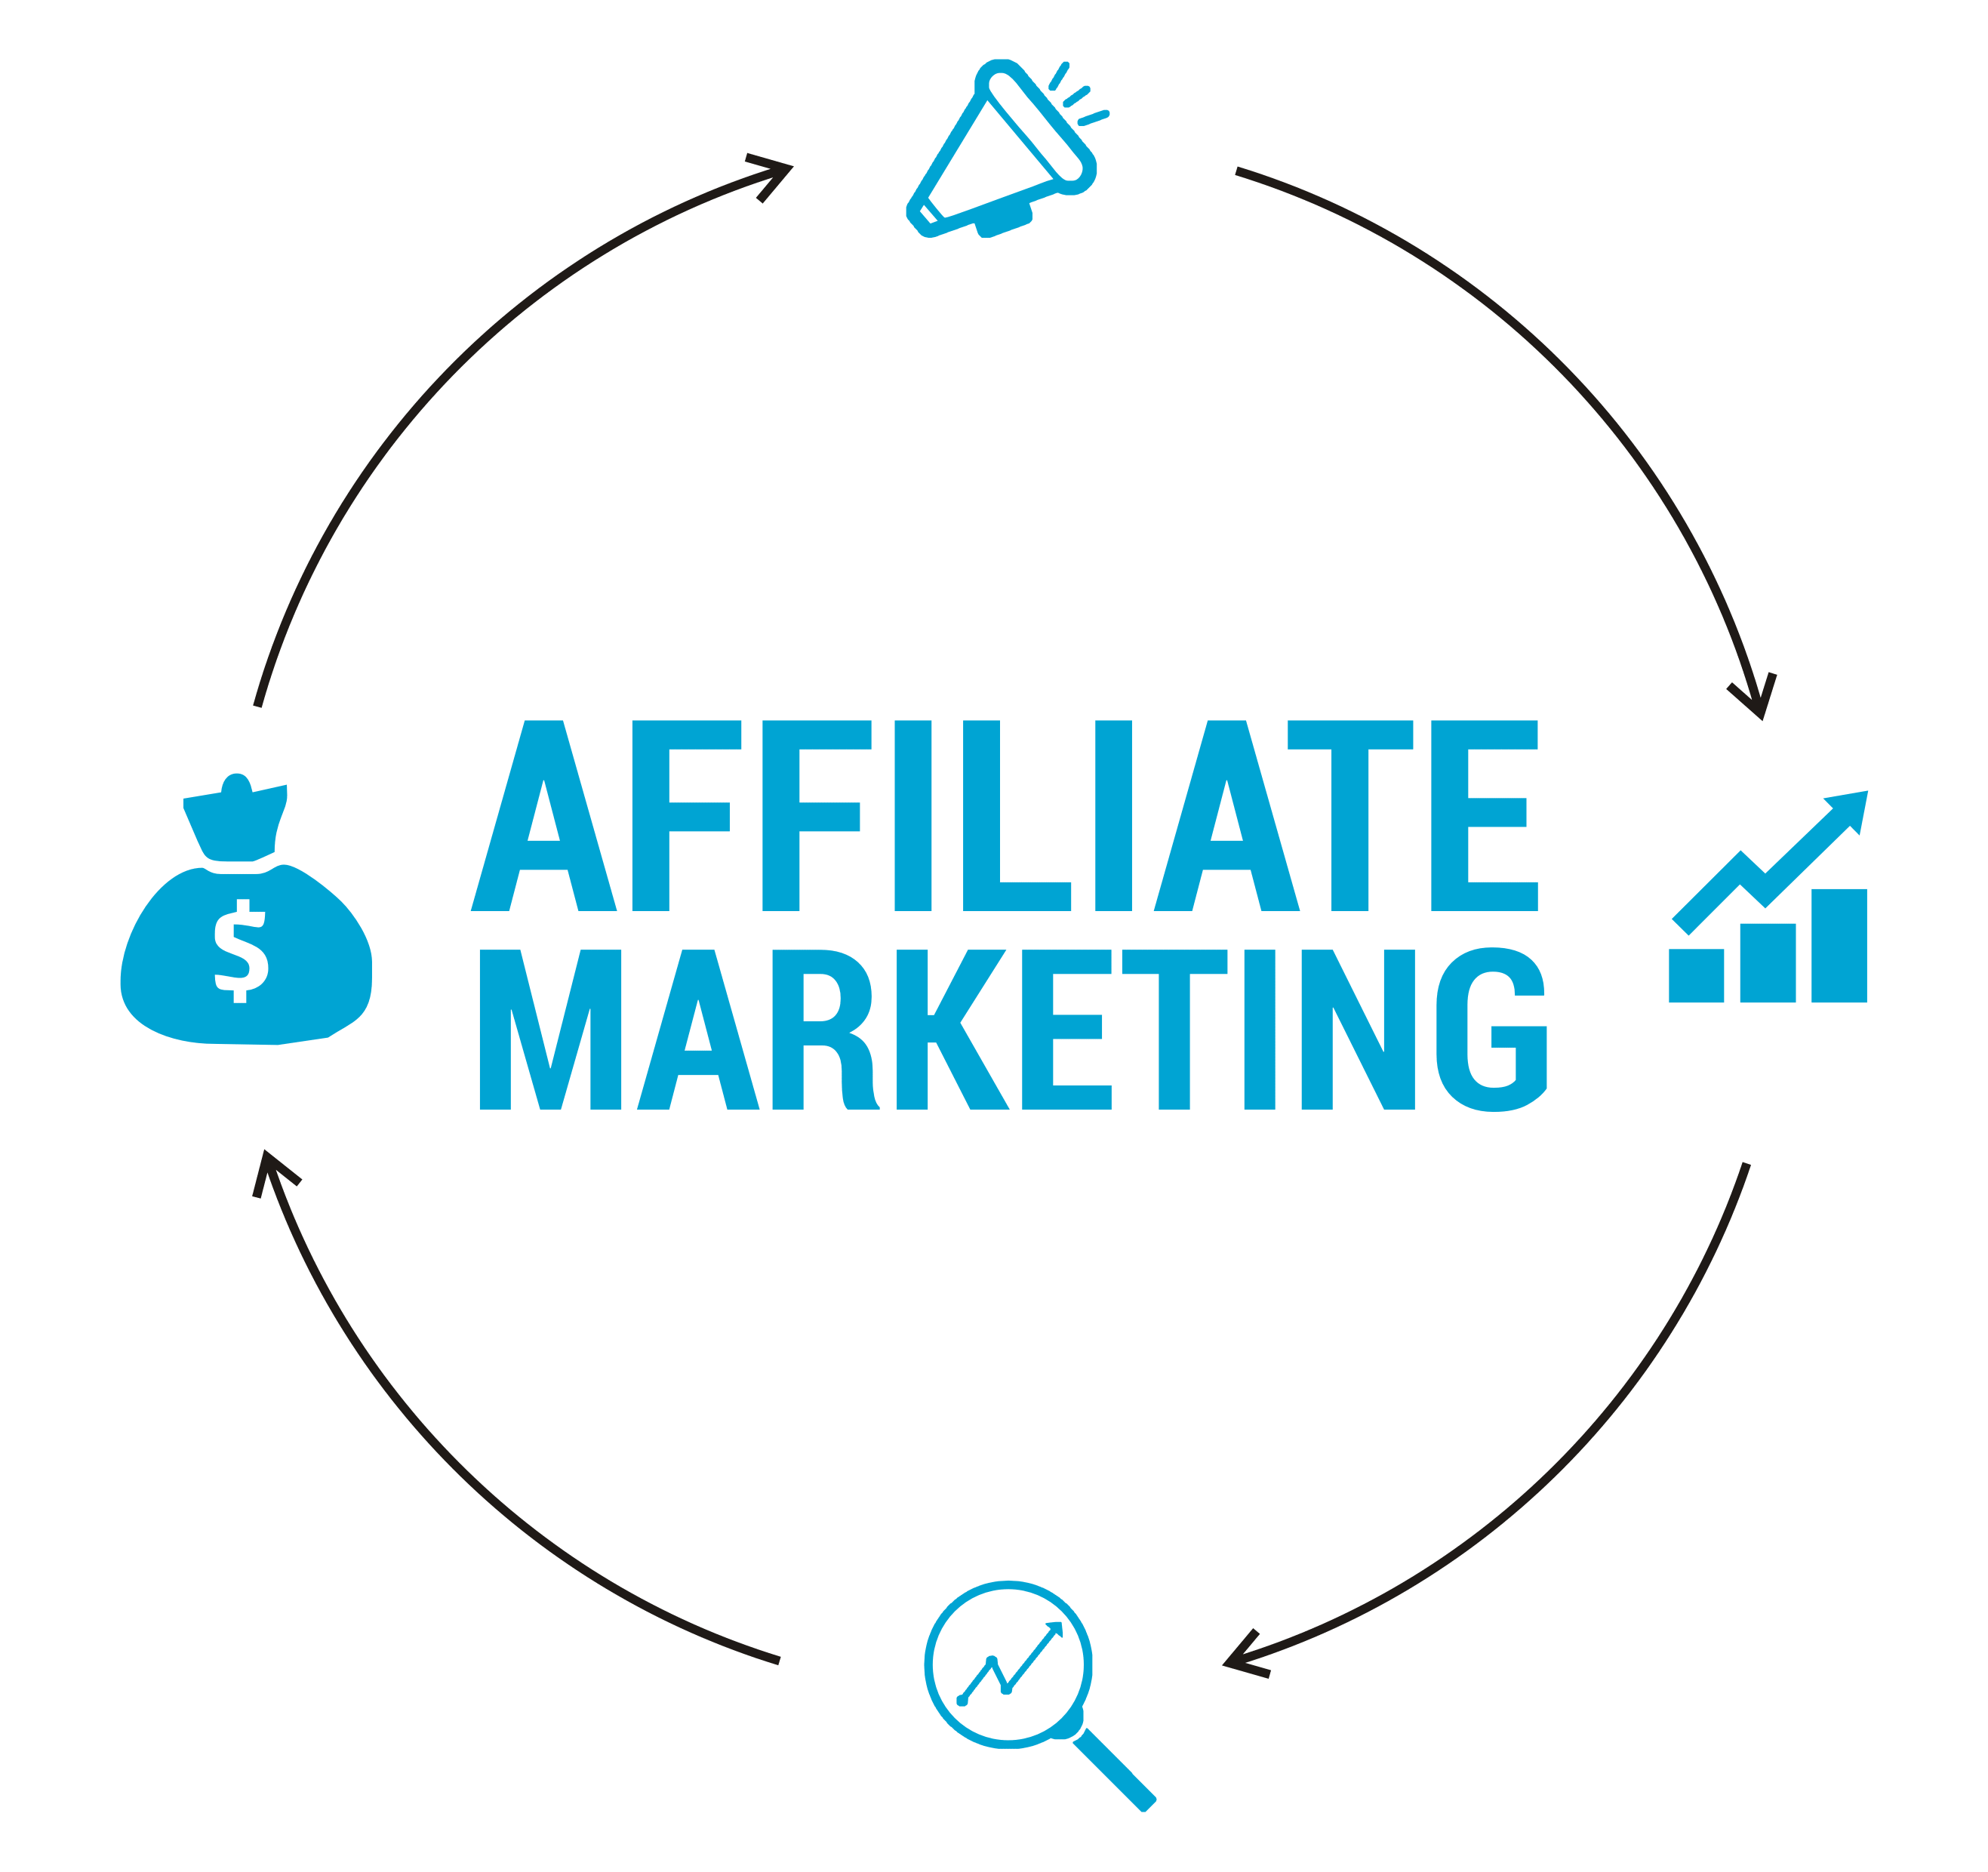 earn money as a affiliate marketer